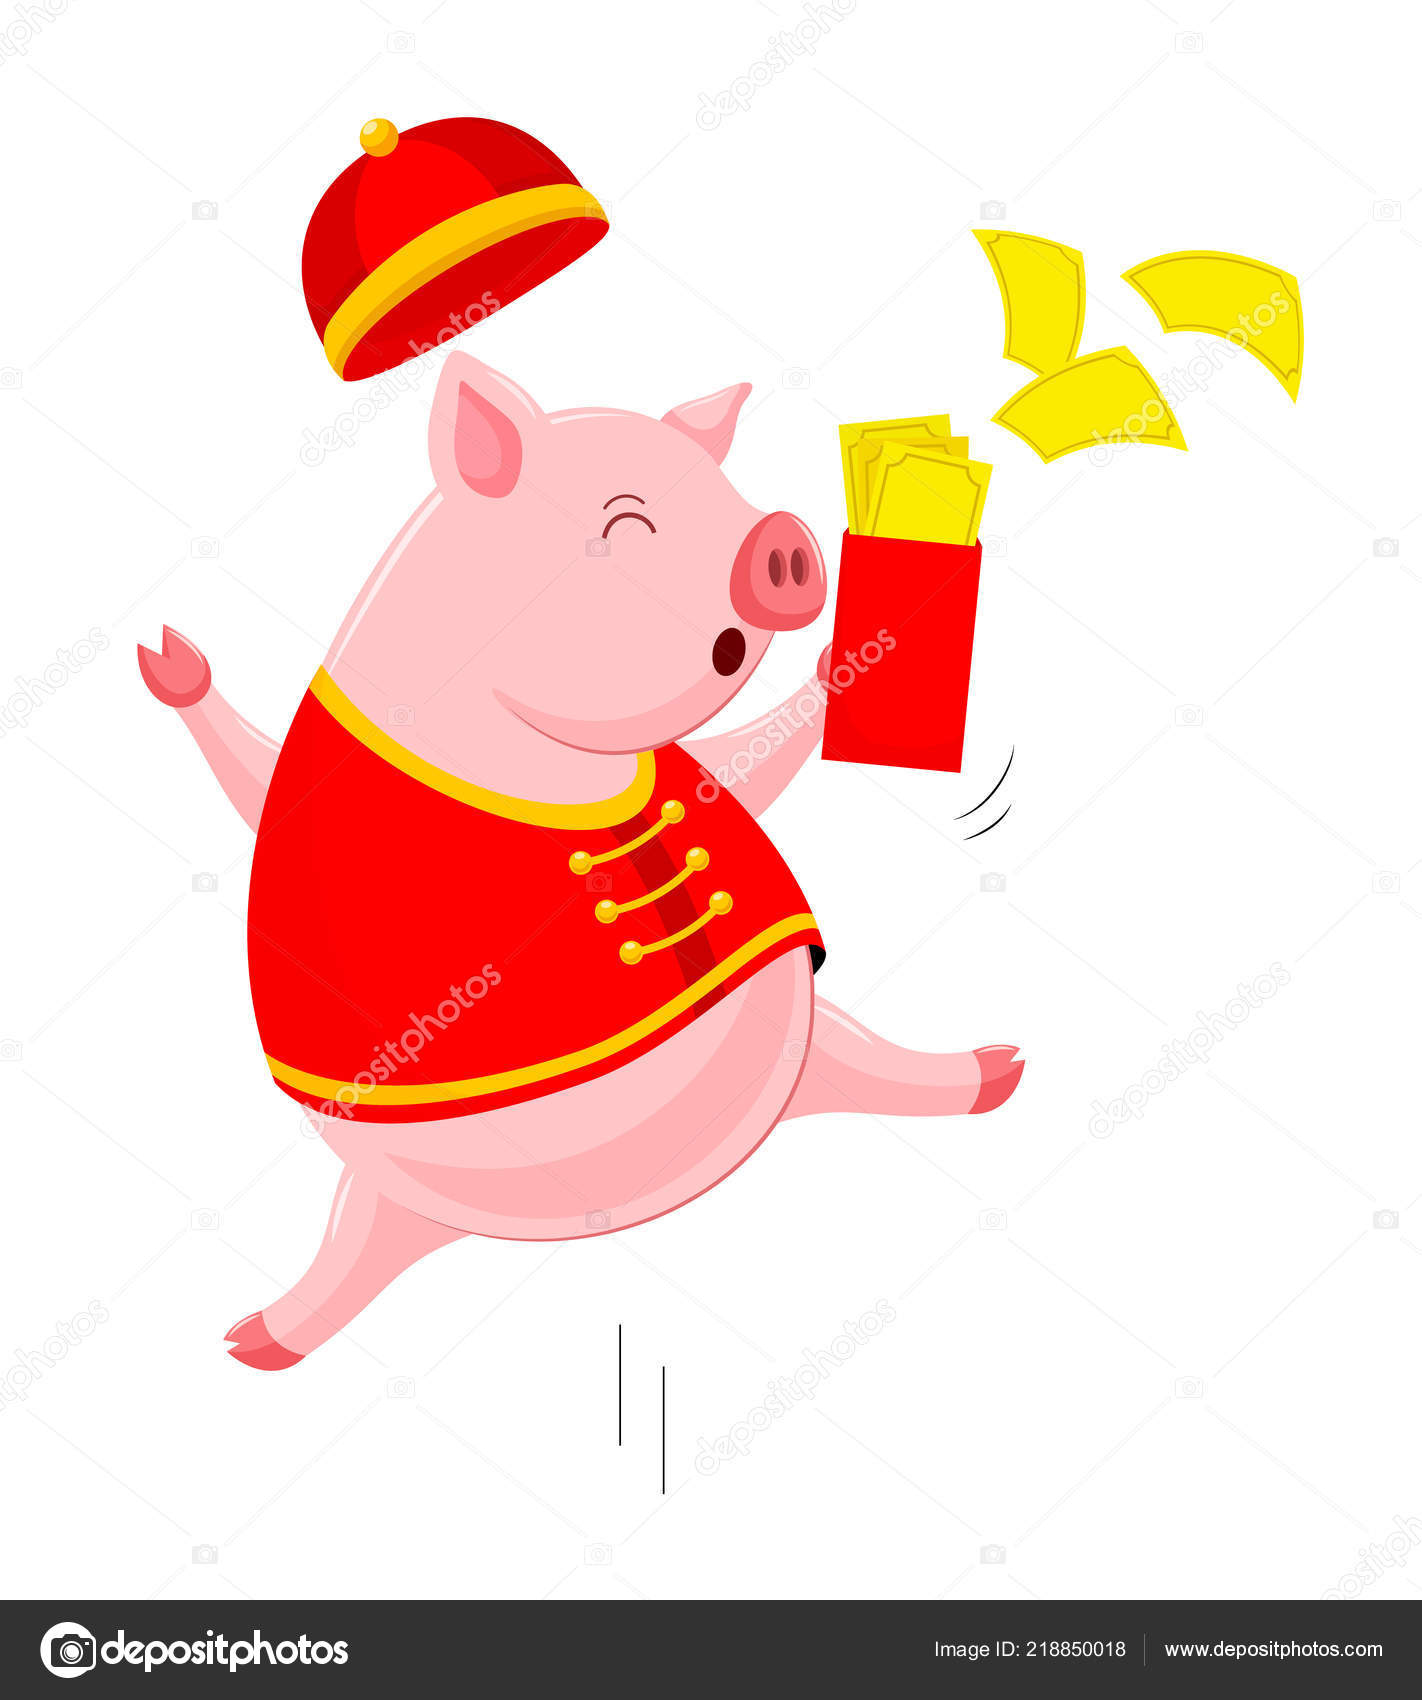 funny cartoon pig characters wearing traditional chinese costume